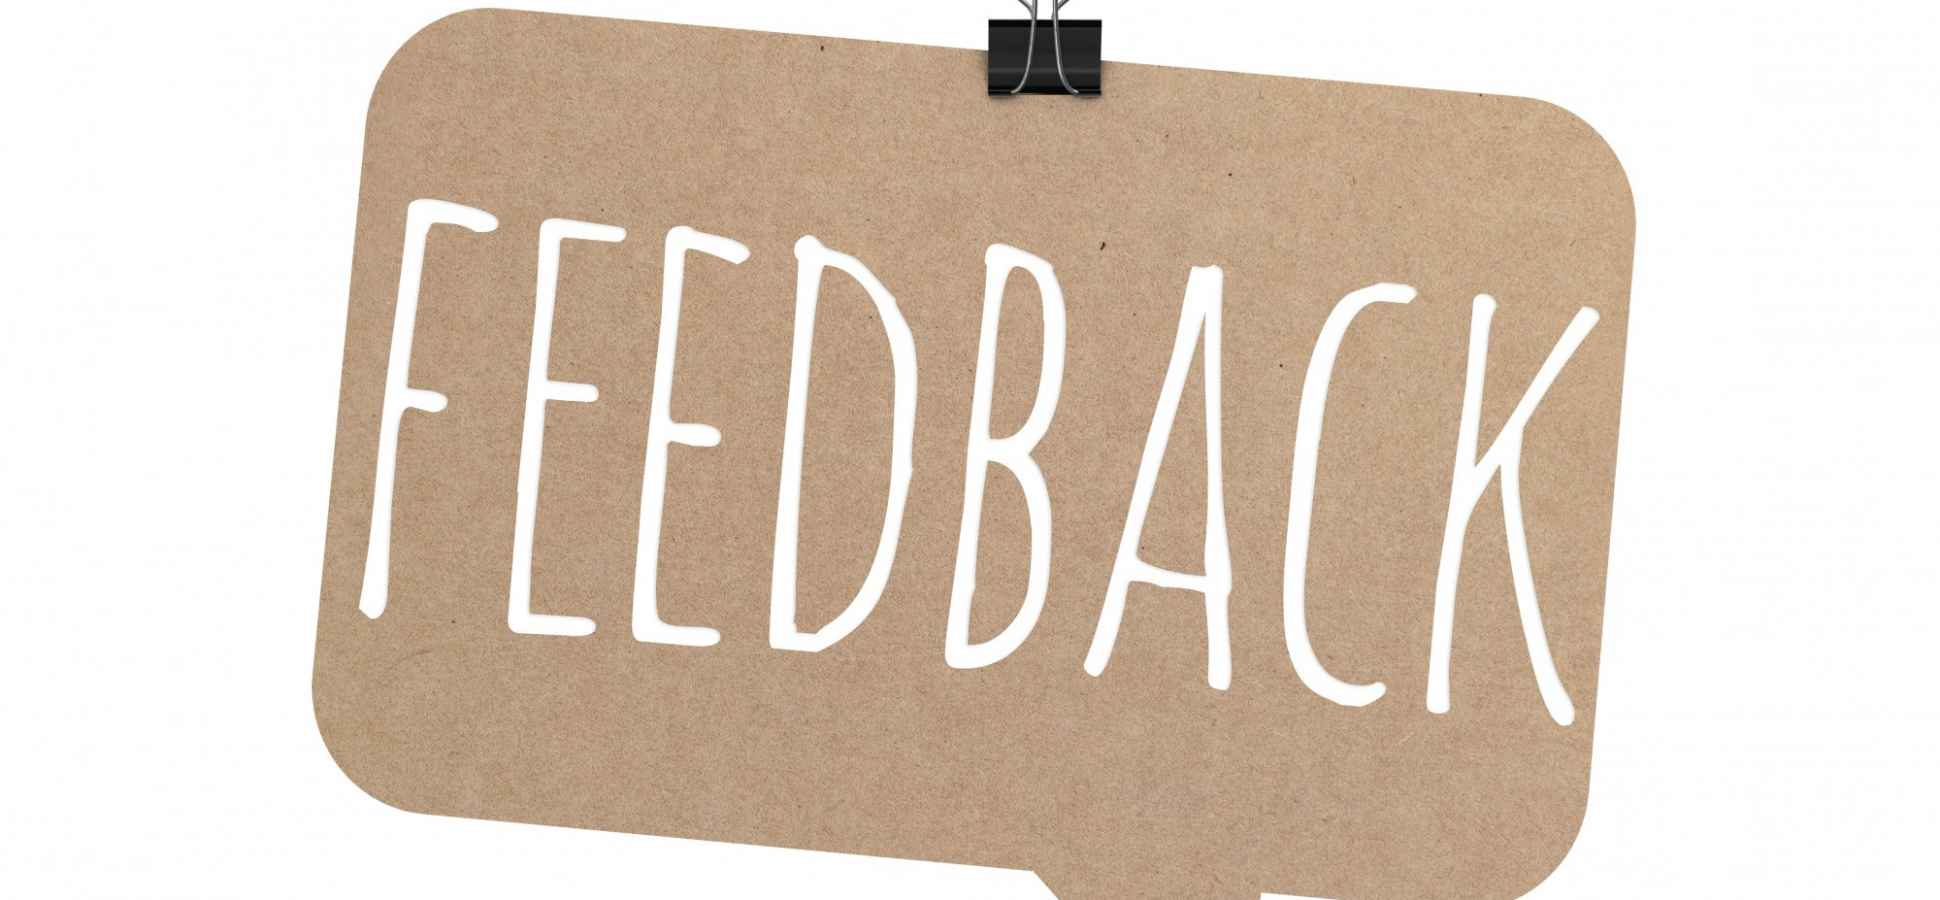 Feedback Is Different For Men And Women Leaders, Here's Why